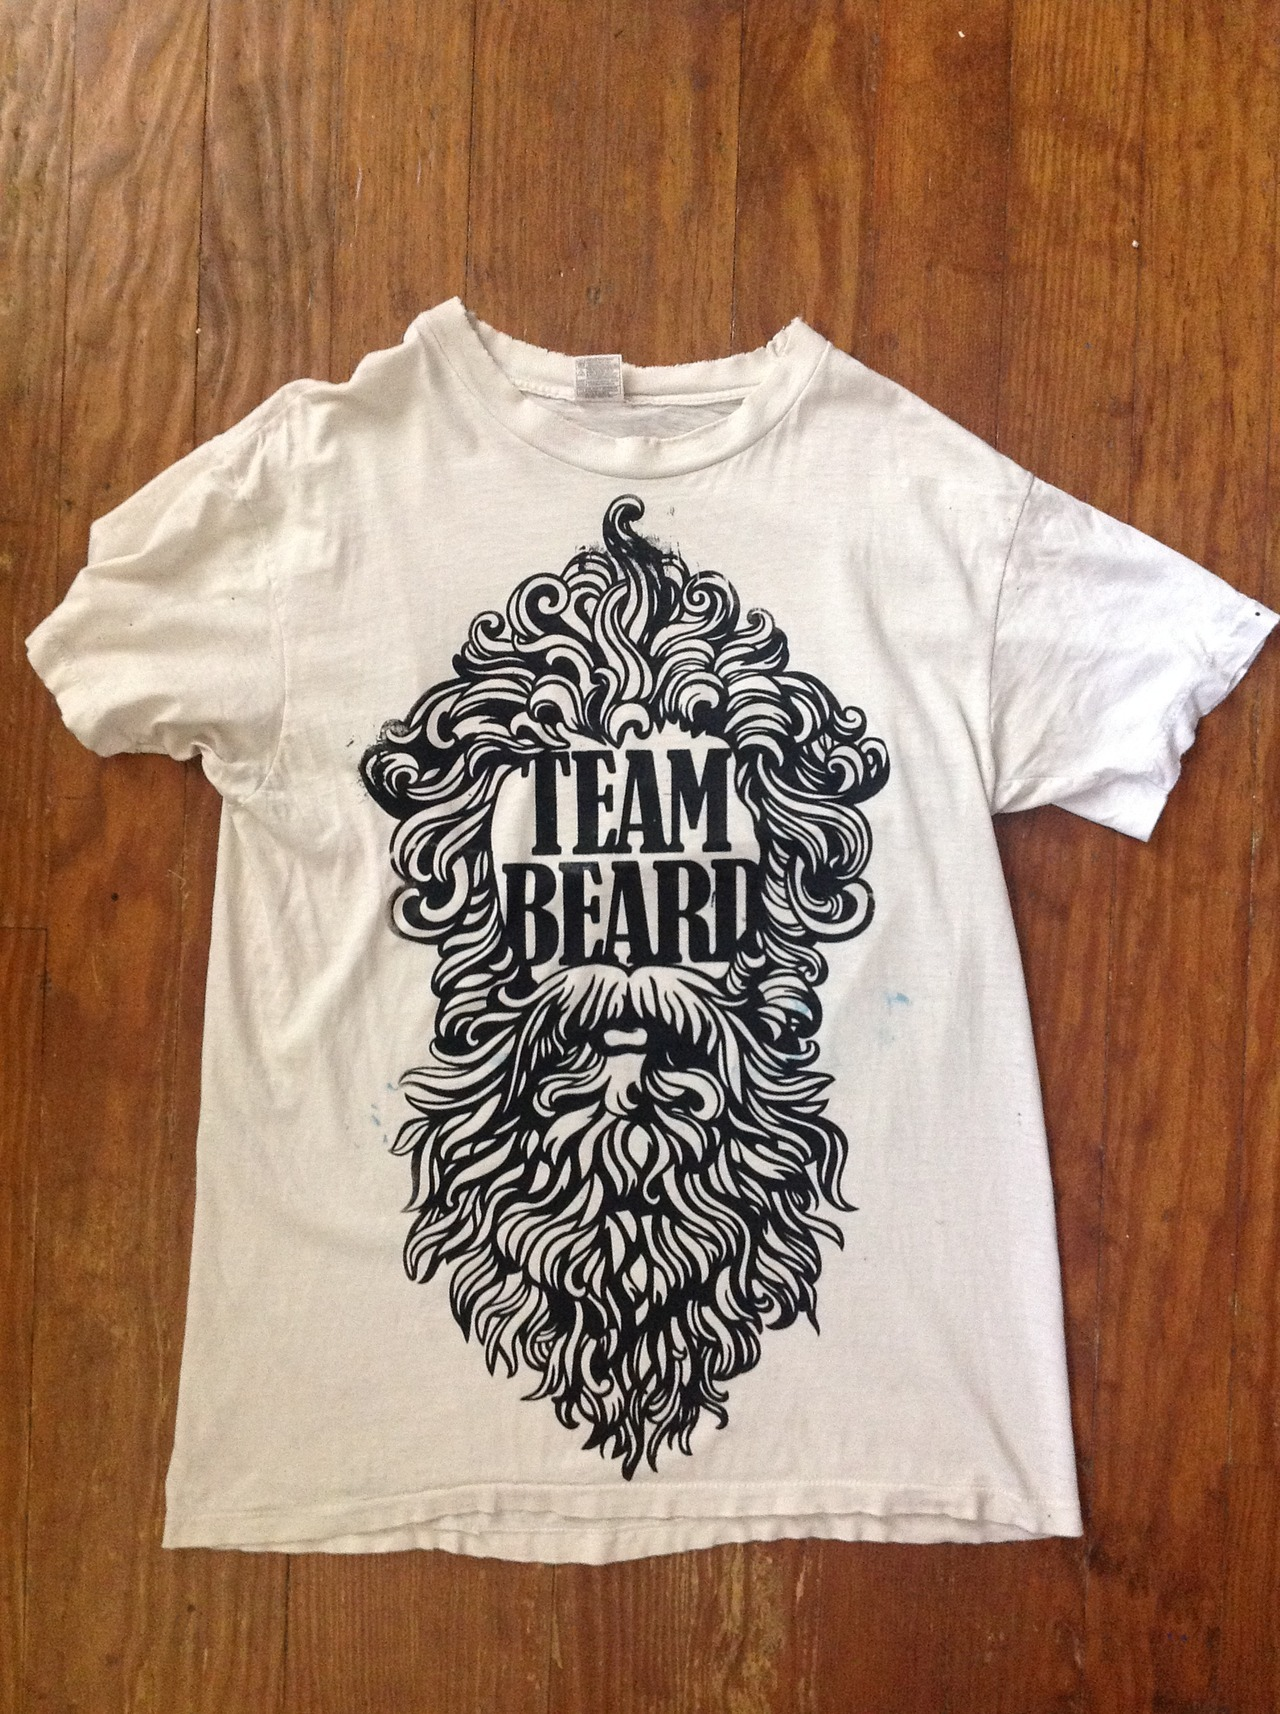 fuckyeahteambeard:  First test of the big screen print. Will probably make a new one since there's a lot of errors in this.  I'm sure most of yous guys won't care, but I've started an art project of sorts. If you like beards then go check it out. I'll be sending sticker packs out soon and selling shirts once I get a good screen burned.  There's also my personal blog if anyone wants to find out more about the man behind T&T.